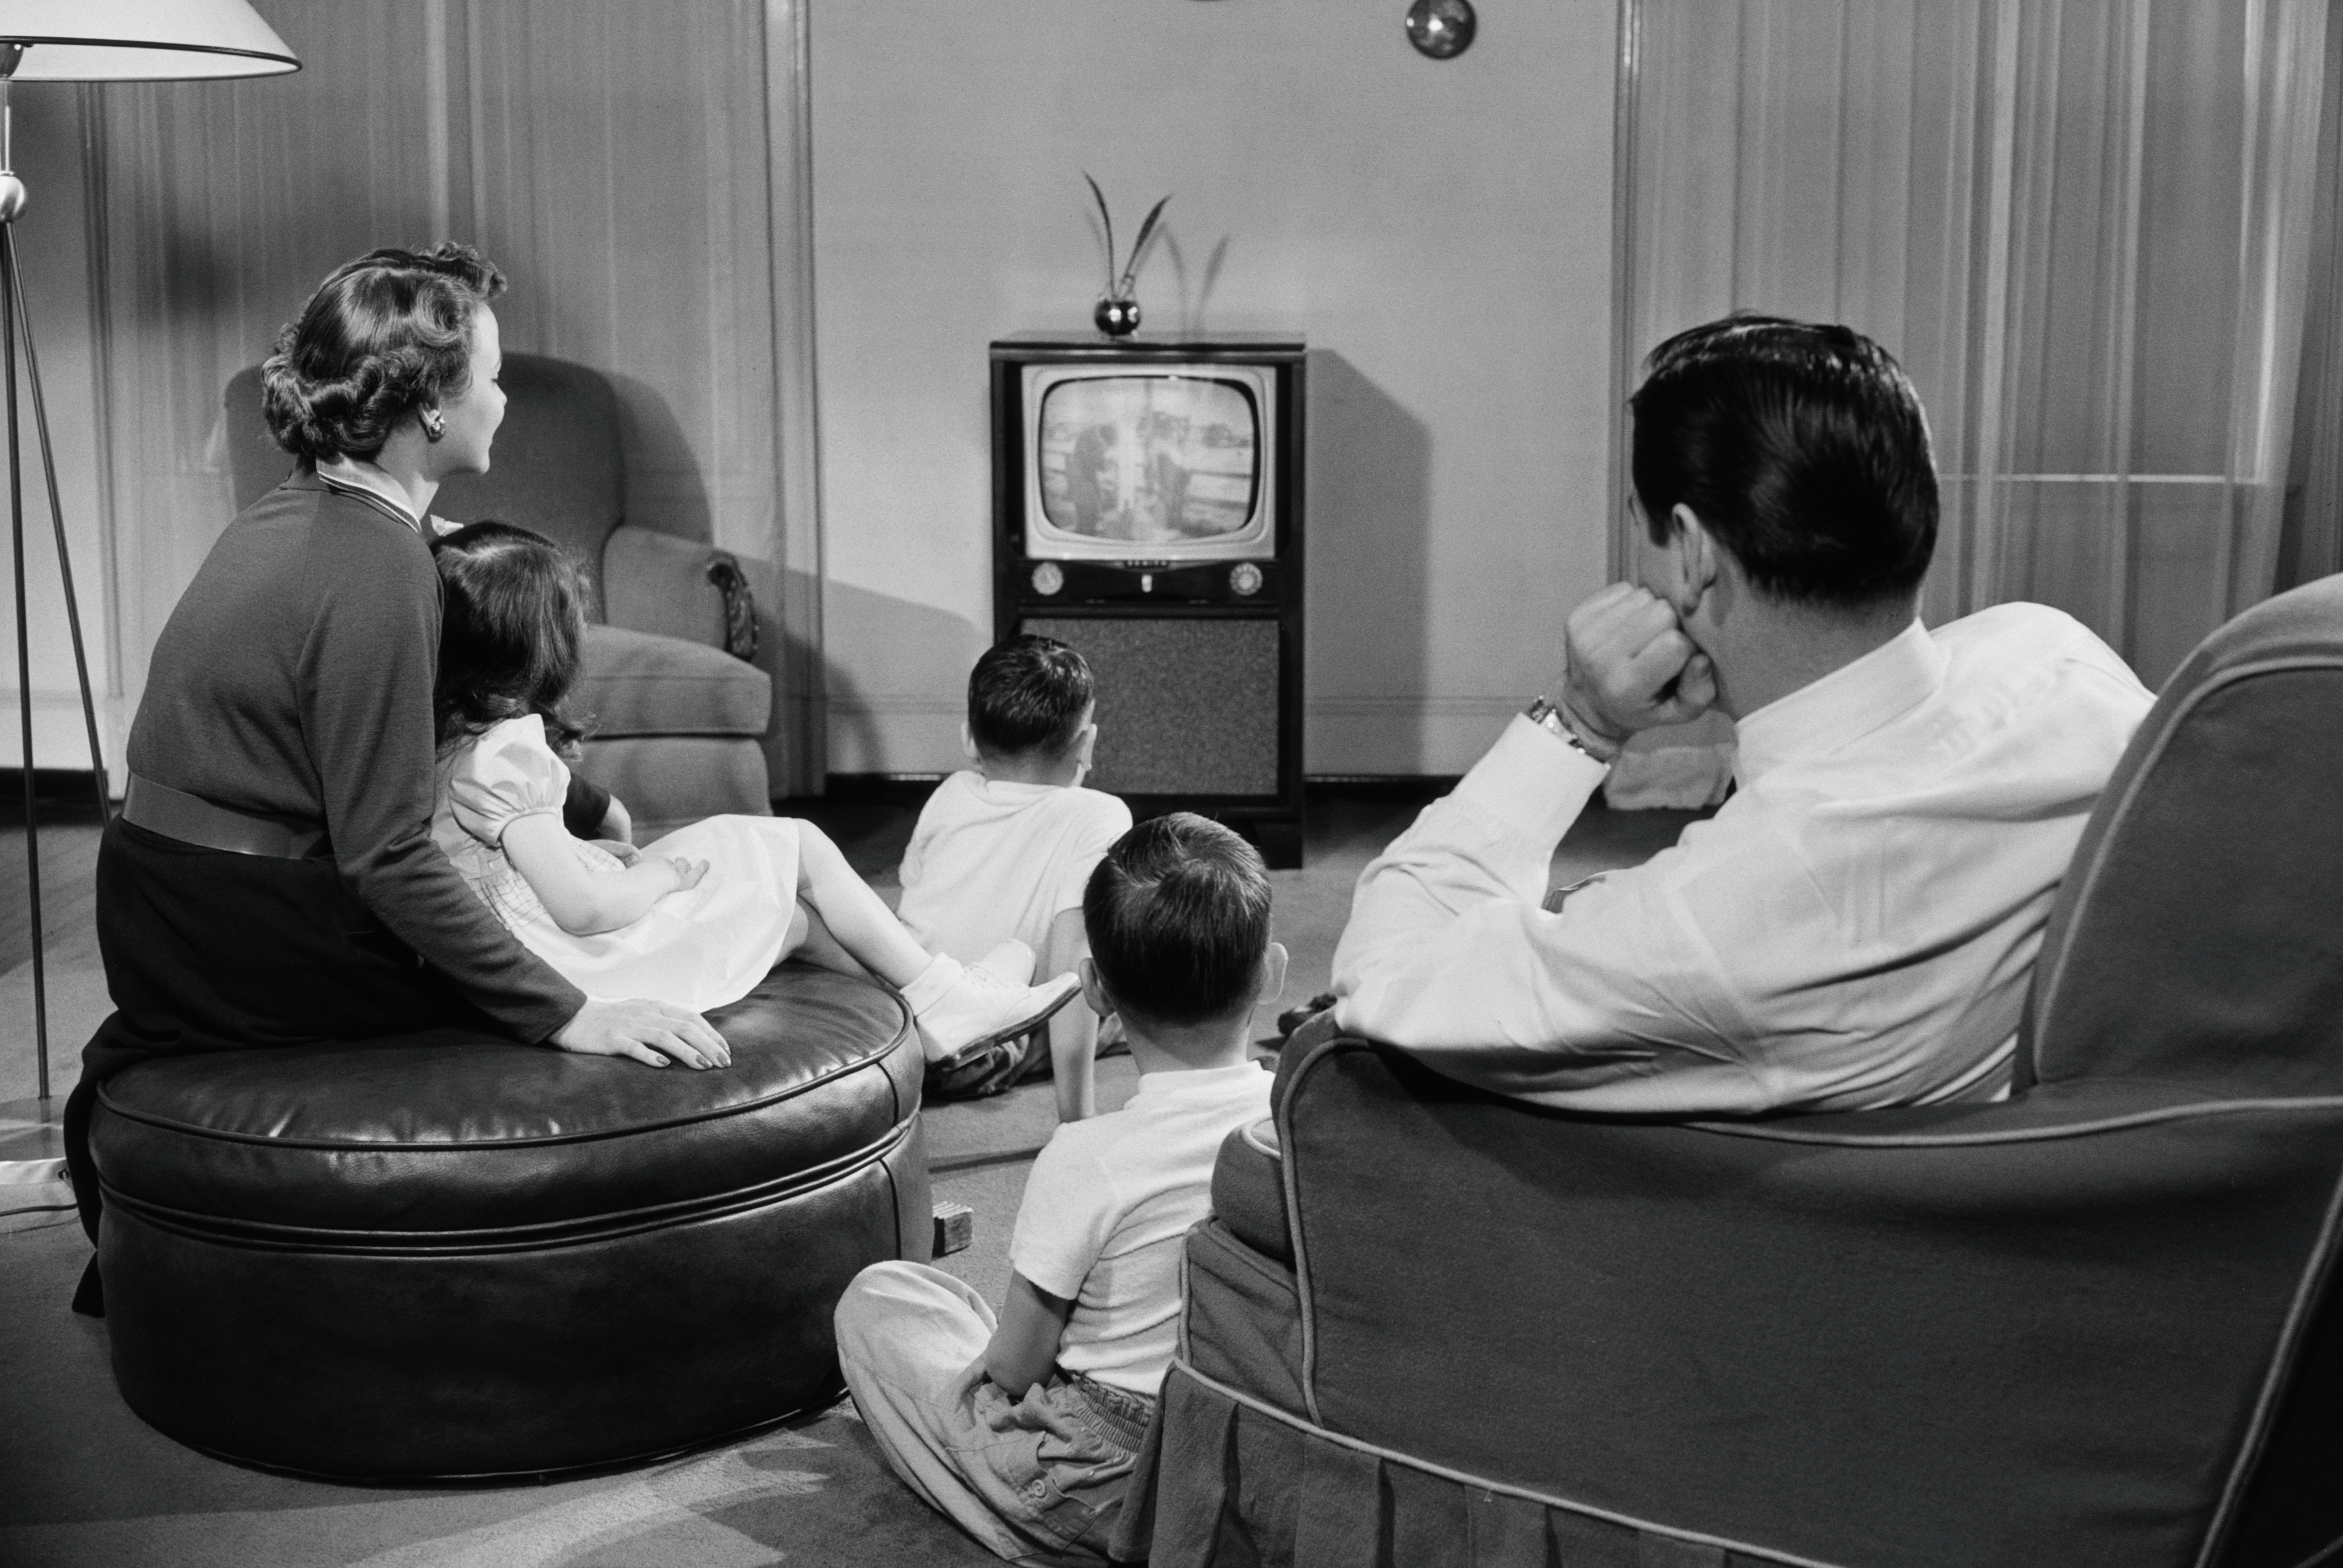 A family watches TV in the living room in the 1950s.